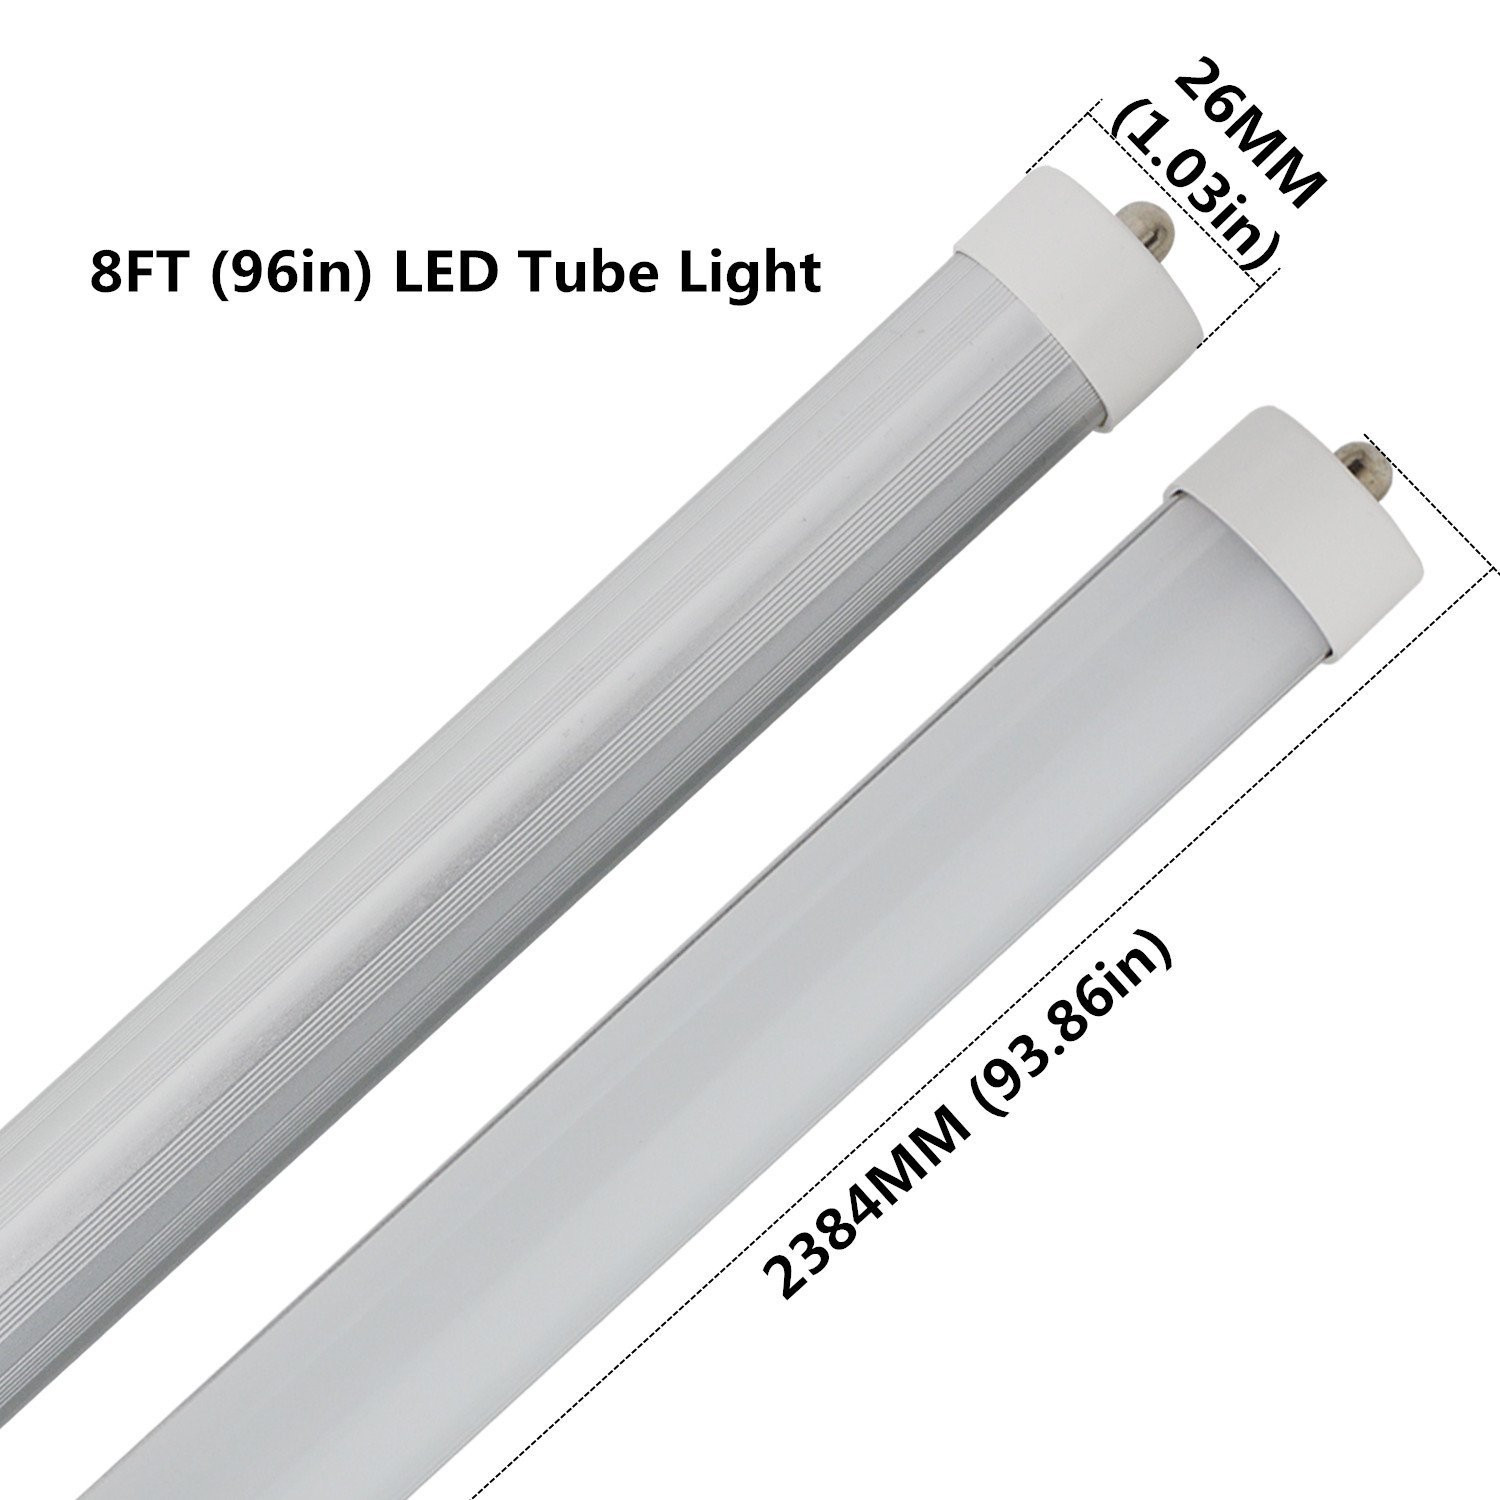 T8/T10/T12 LED Tube Lights Online Retail & Wholesale